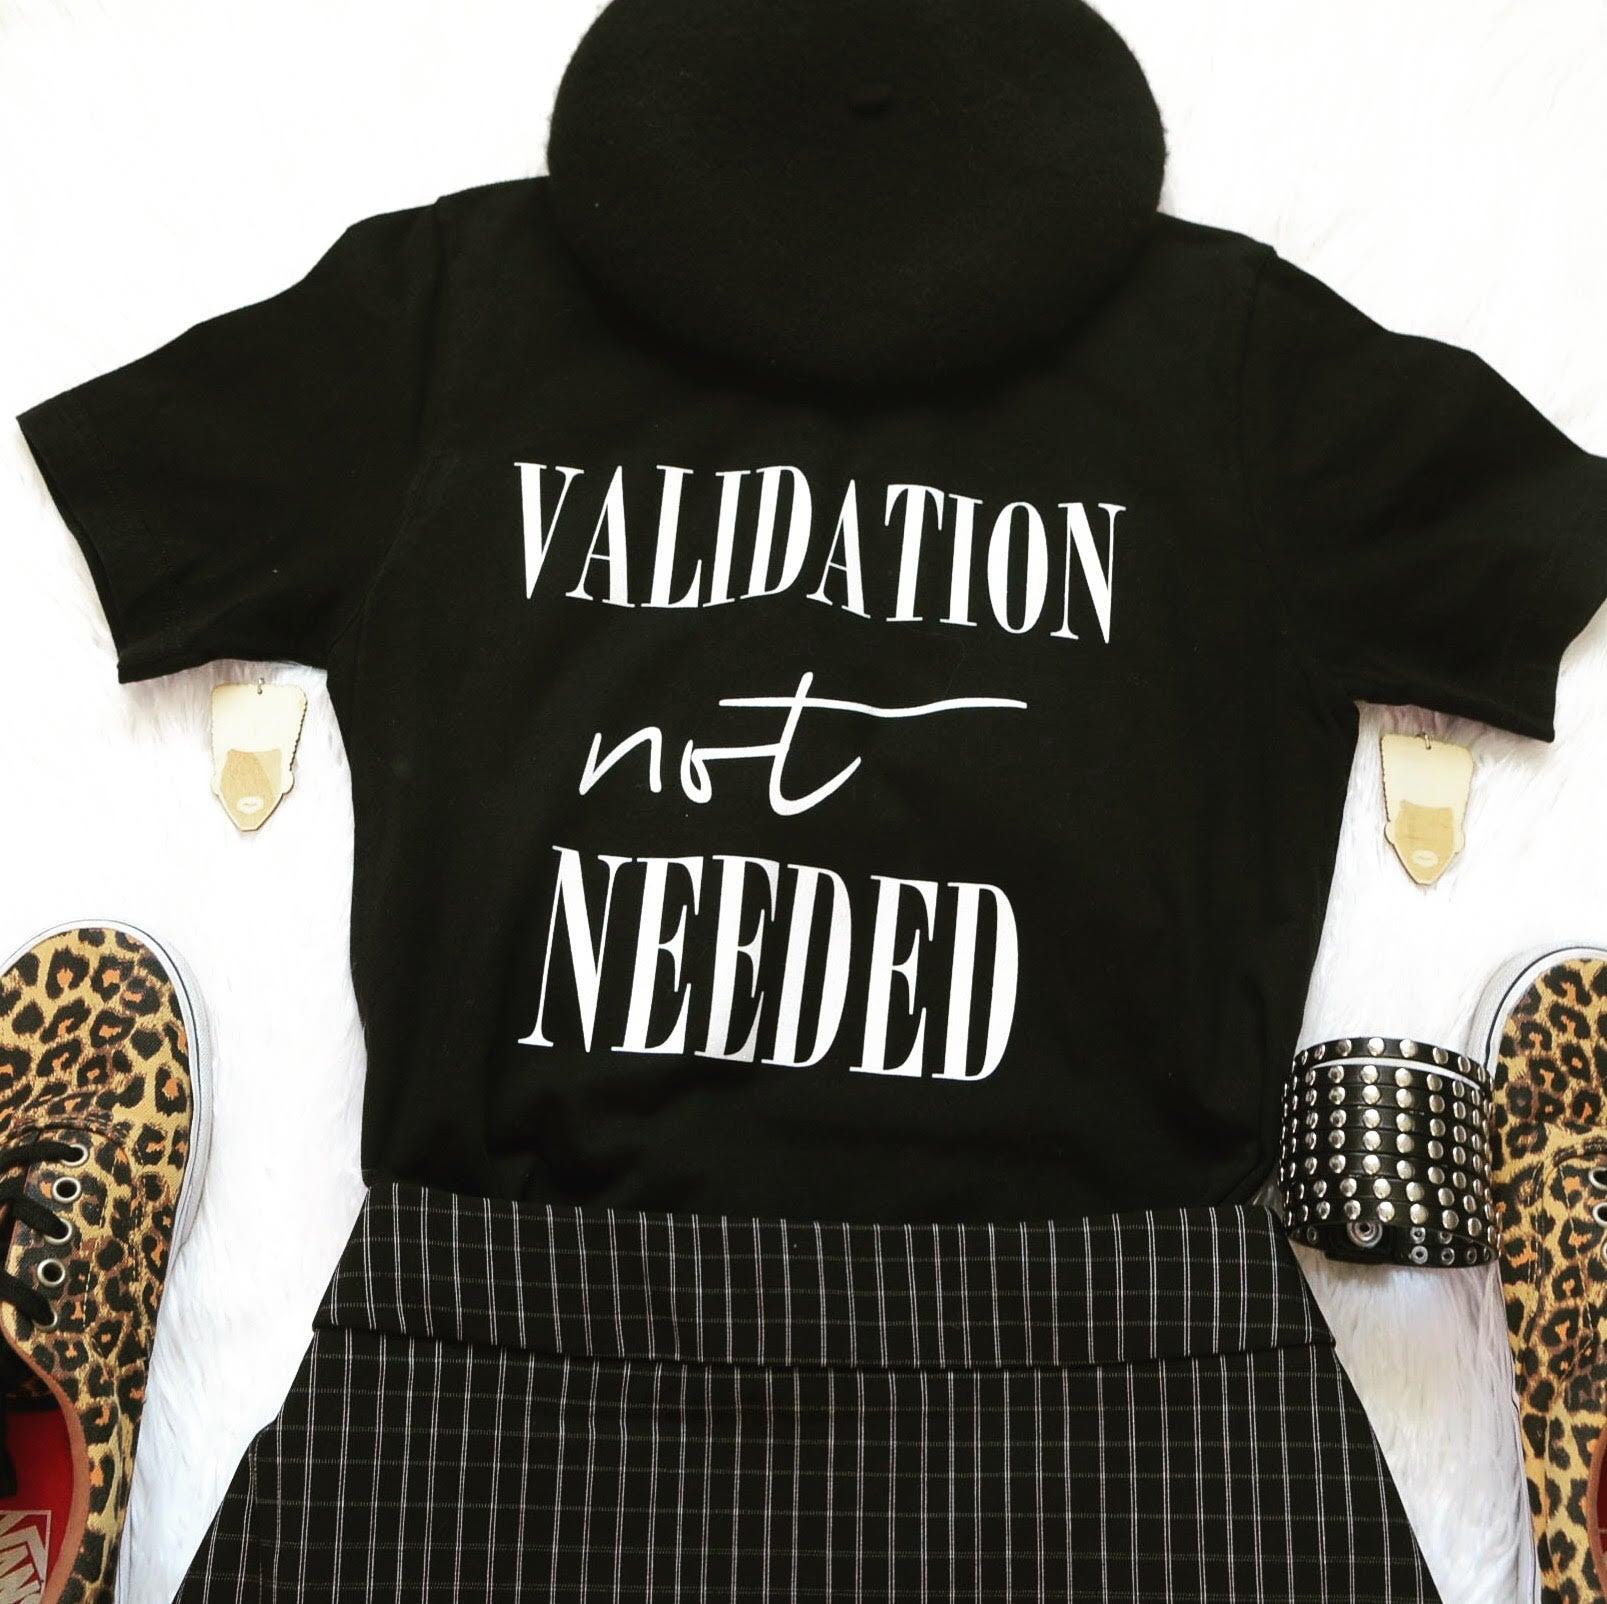 Validation not Needed Black T-shirt Crew Neck Empowerment T-shirts